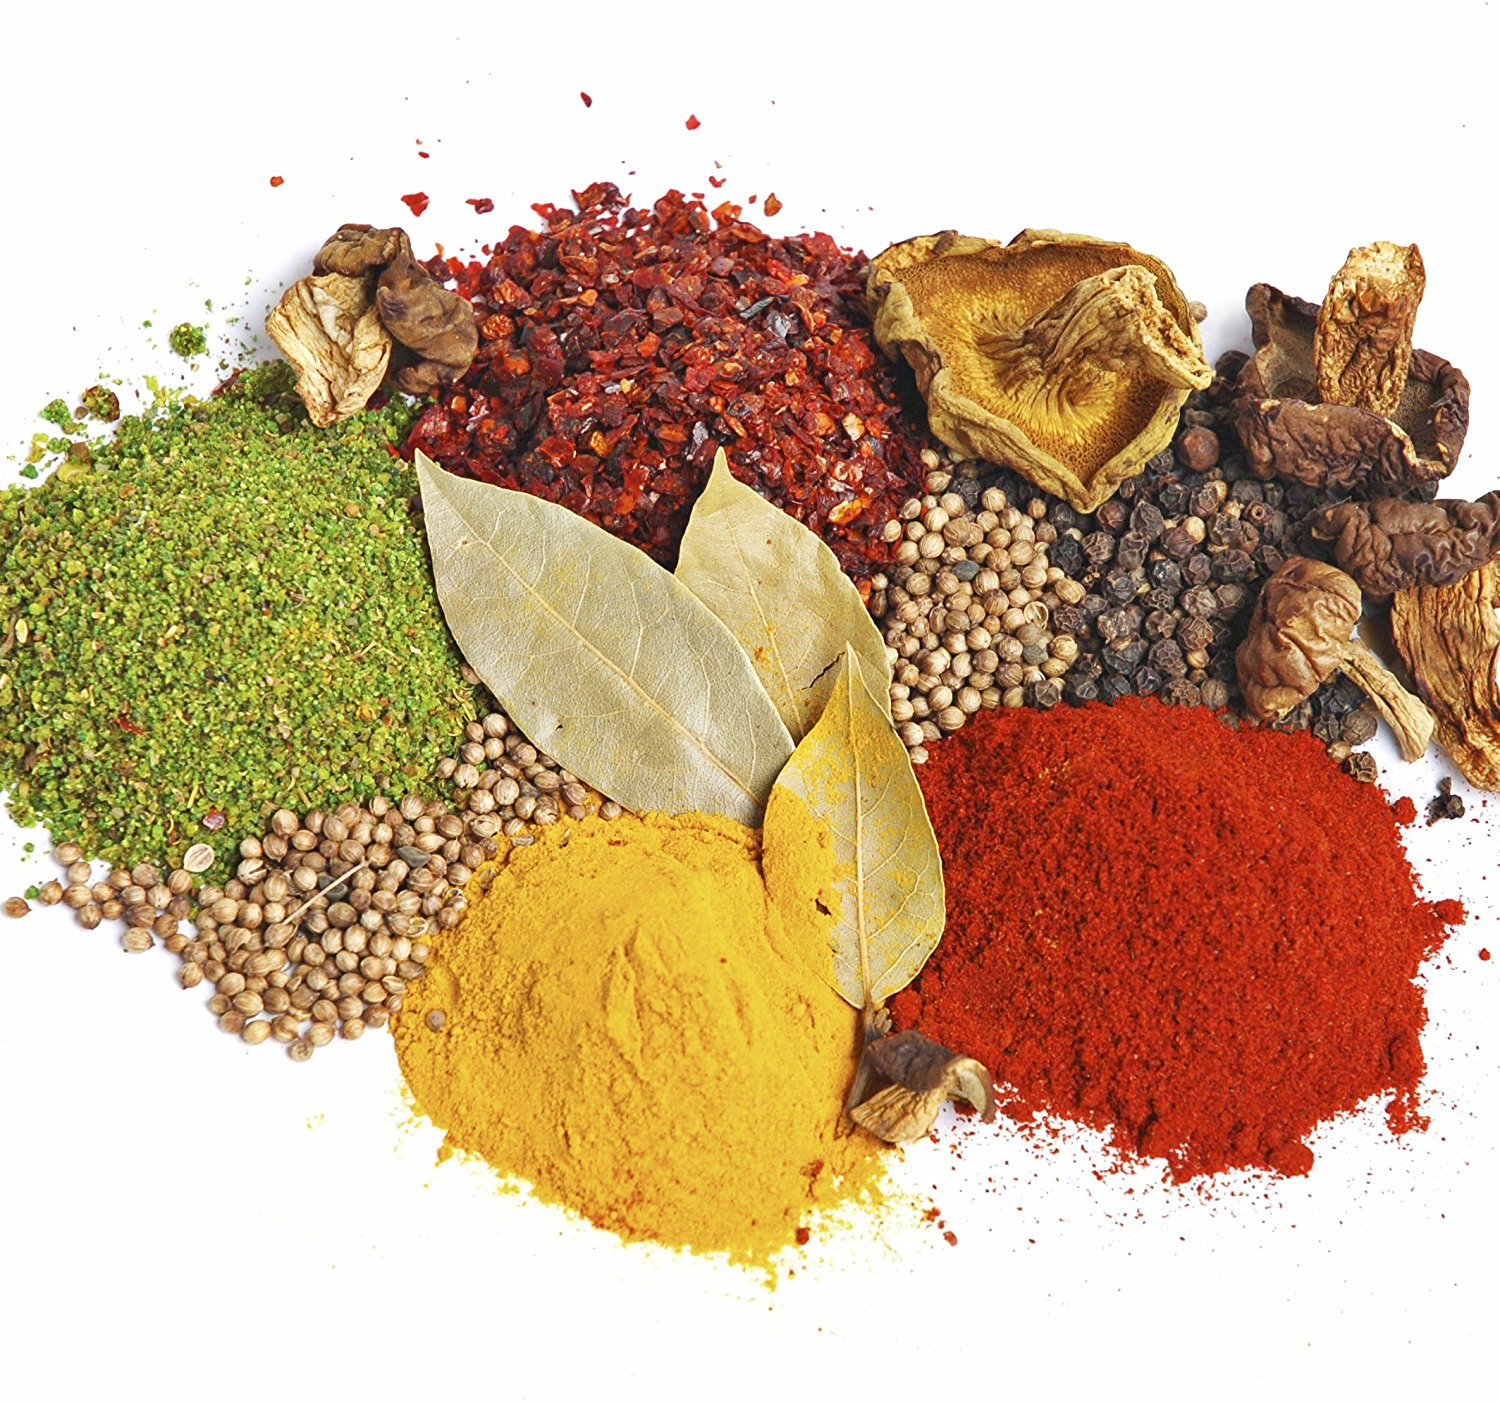 Amazon.com : Curry Spice Kit - 10 Authentic Spices Refill + A FREE ...